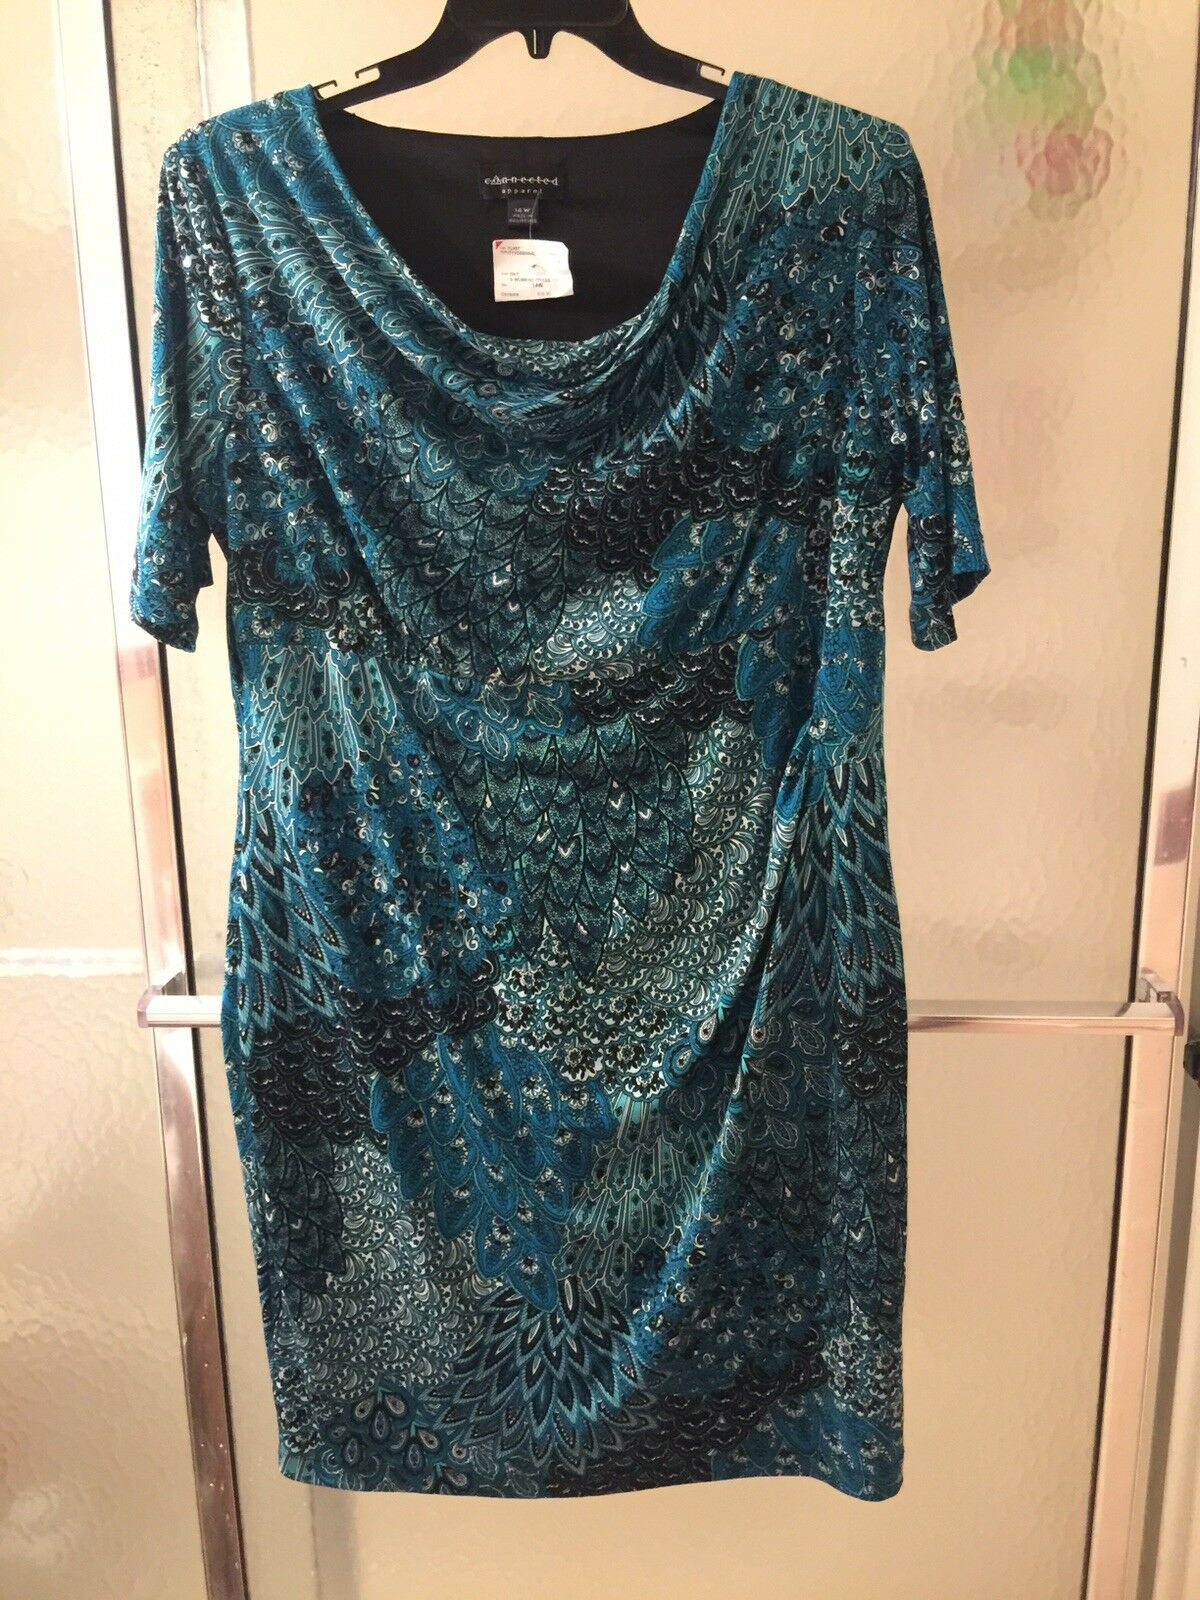 NWT Connected Apparel MulticolGoldt Dress; Szs 18W; Short Sleeves;  each